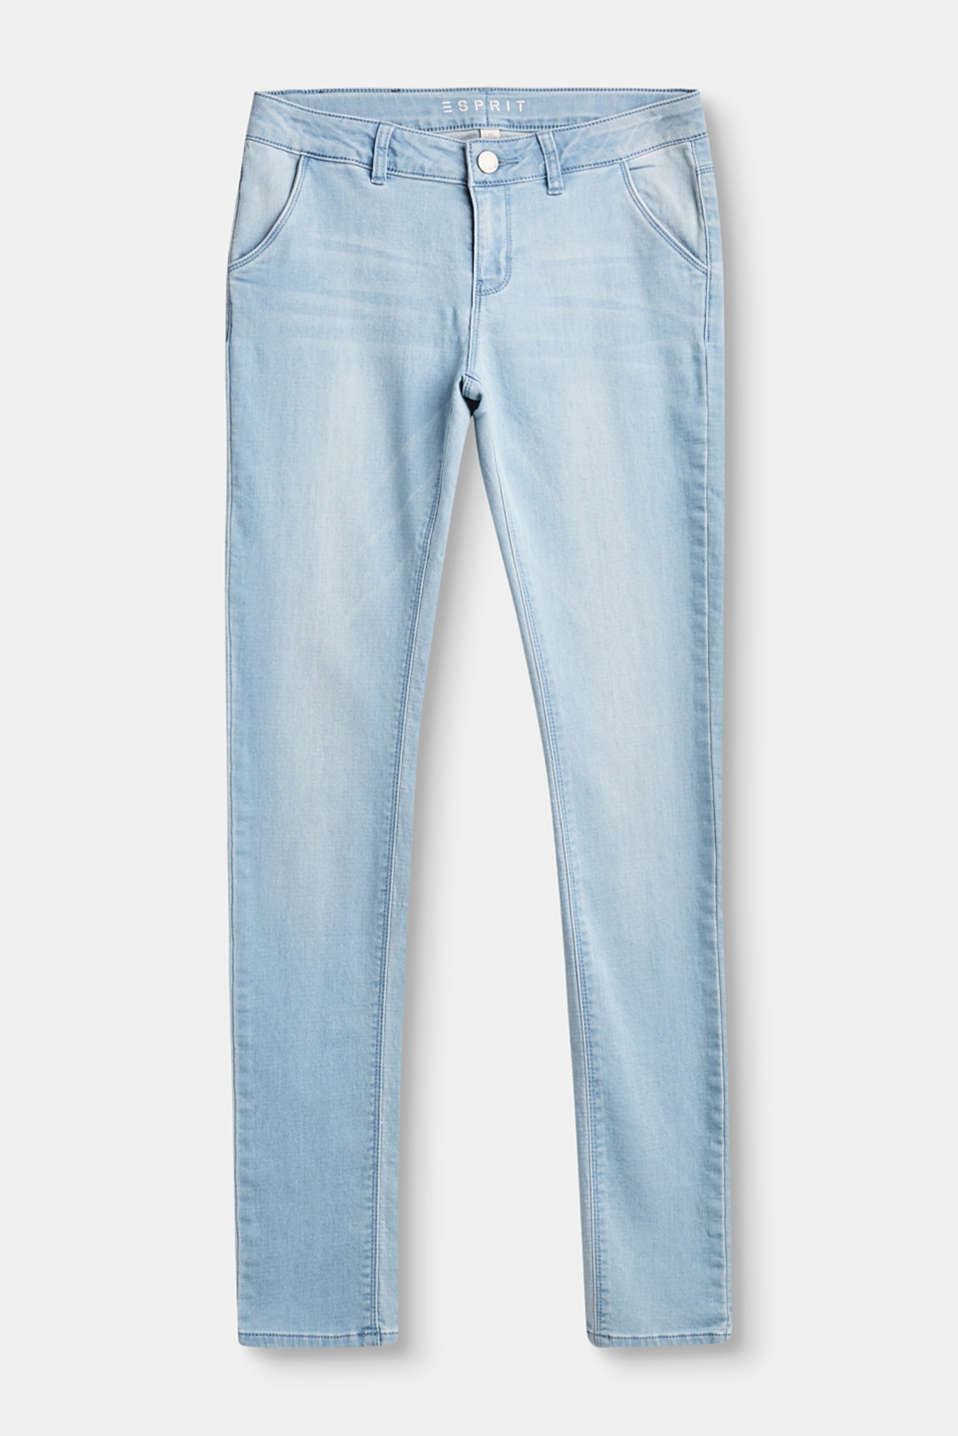 Esprit - Jean stretch ultra-doux, style chino